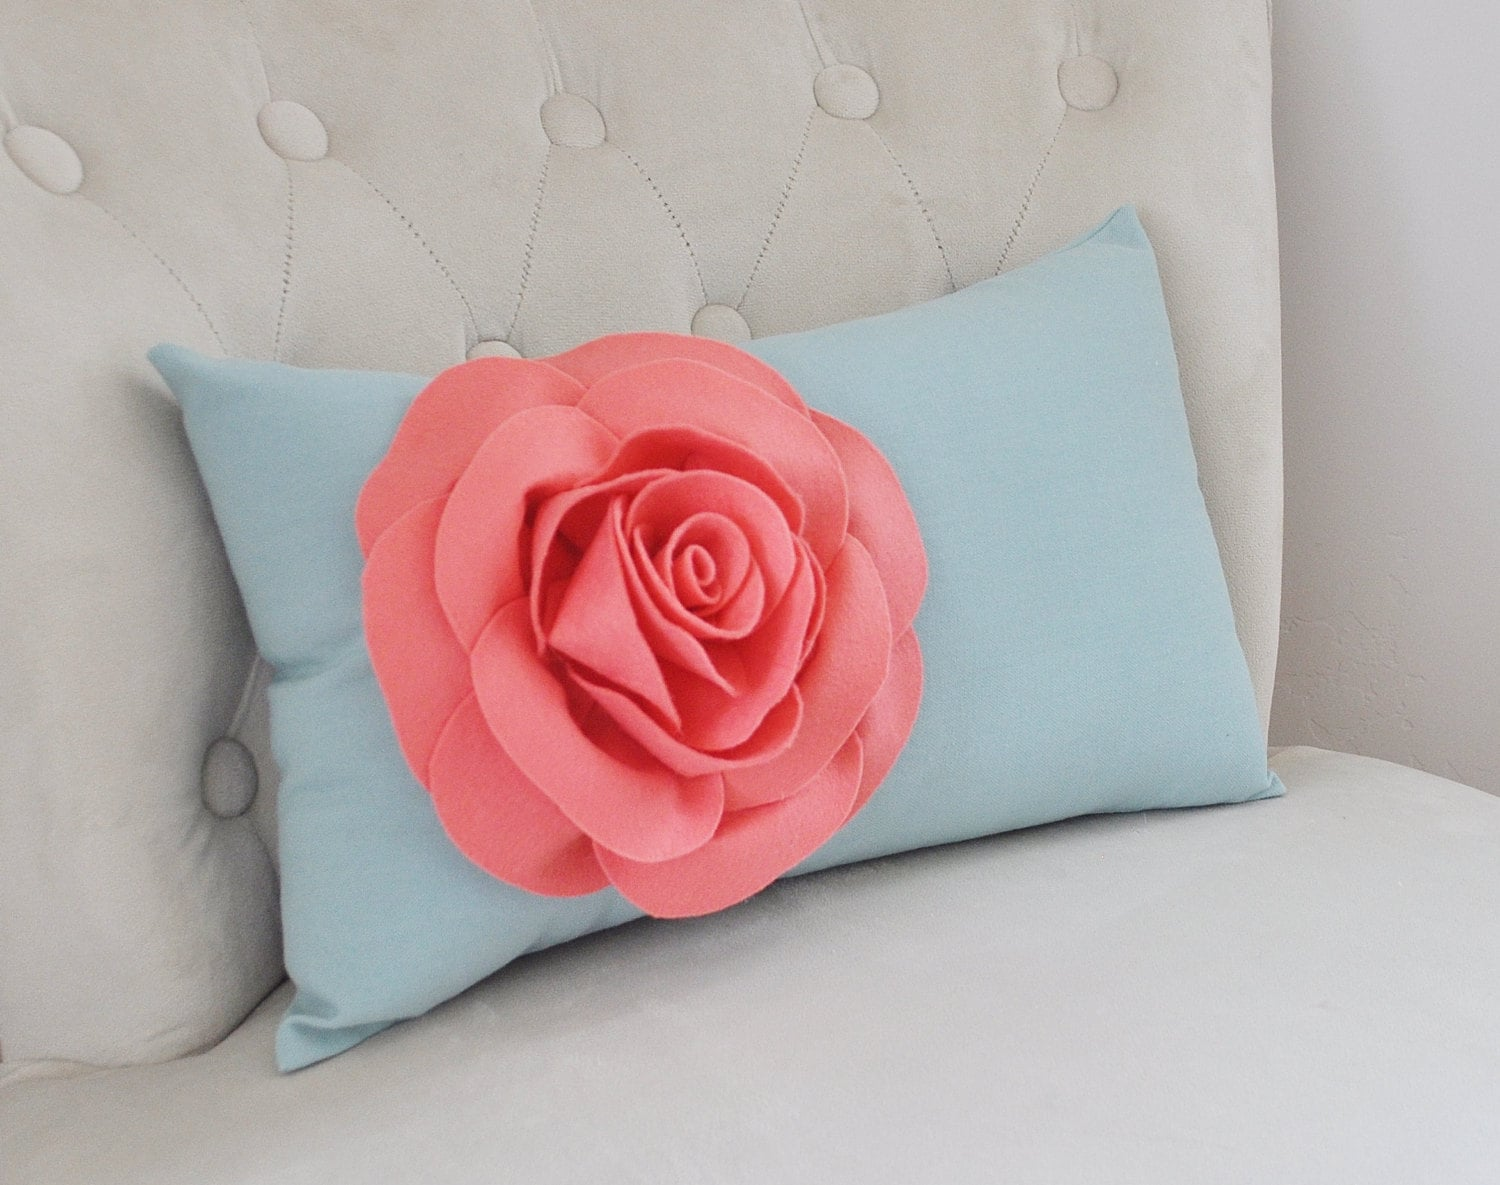 Dusty Blue Decorative Pillows : Light Coral Rose on Dusty Blue Lumbar Pillow Decorative